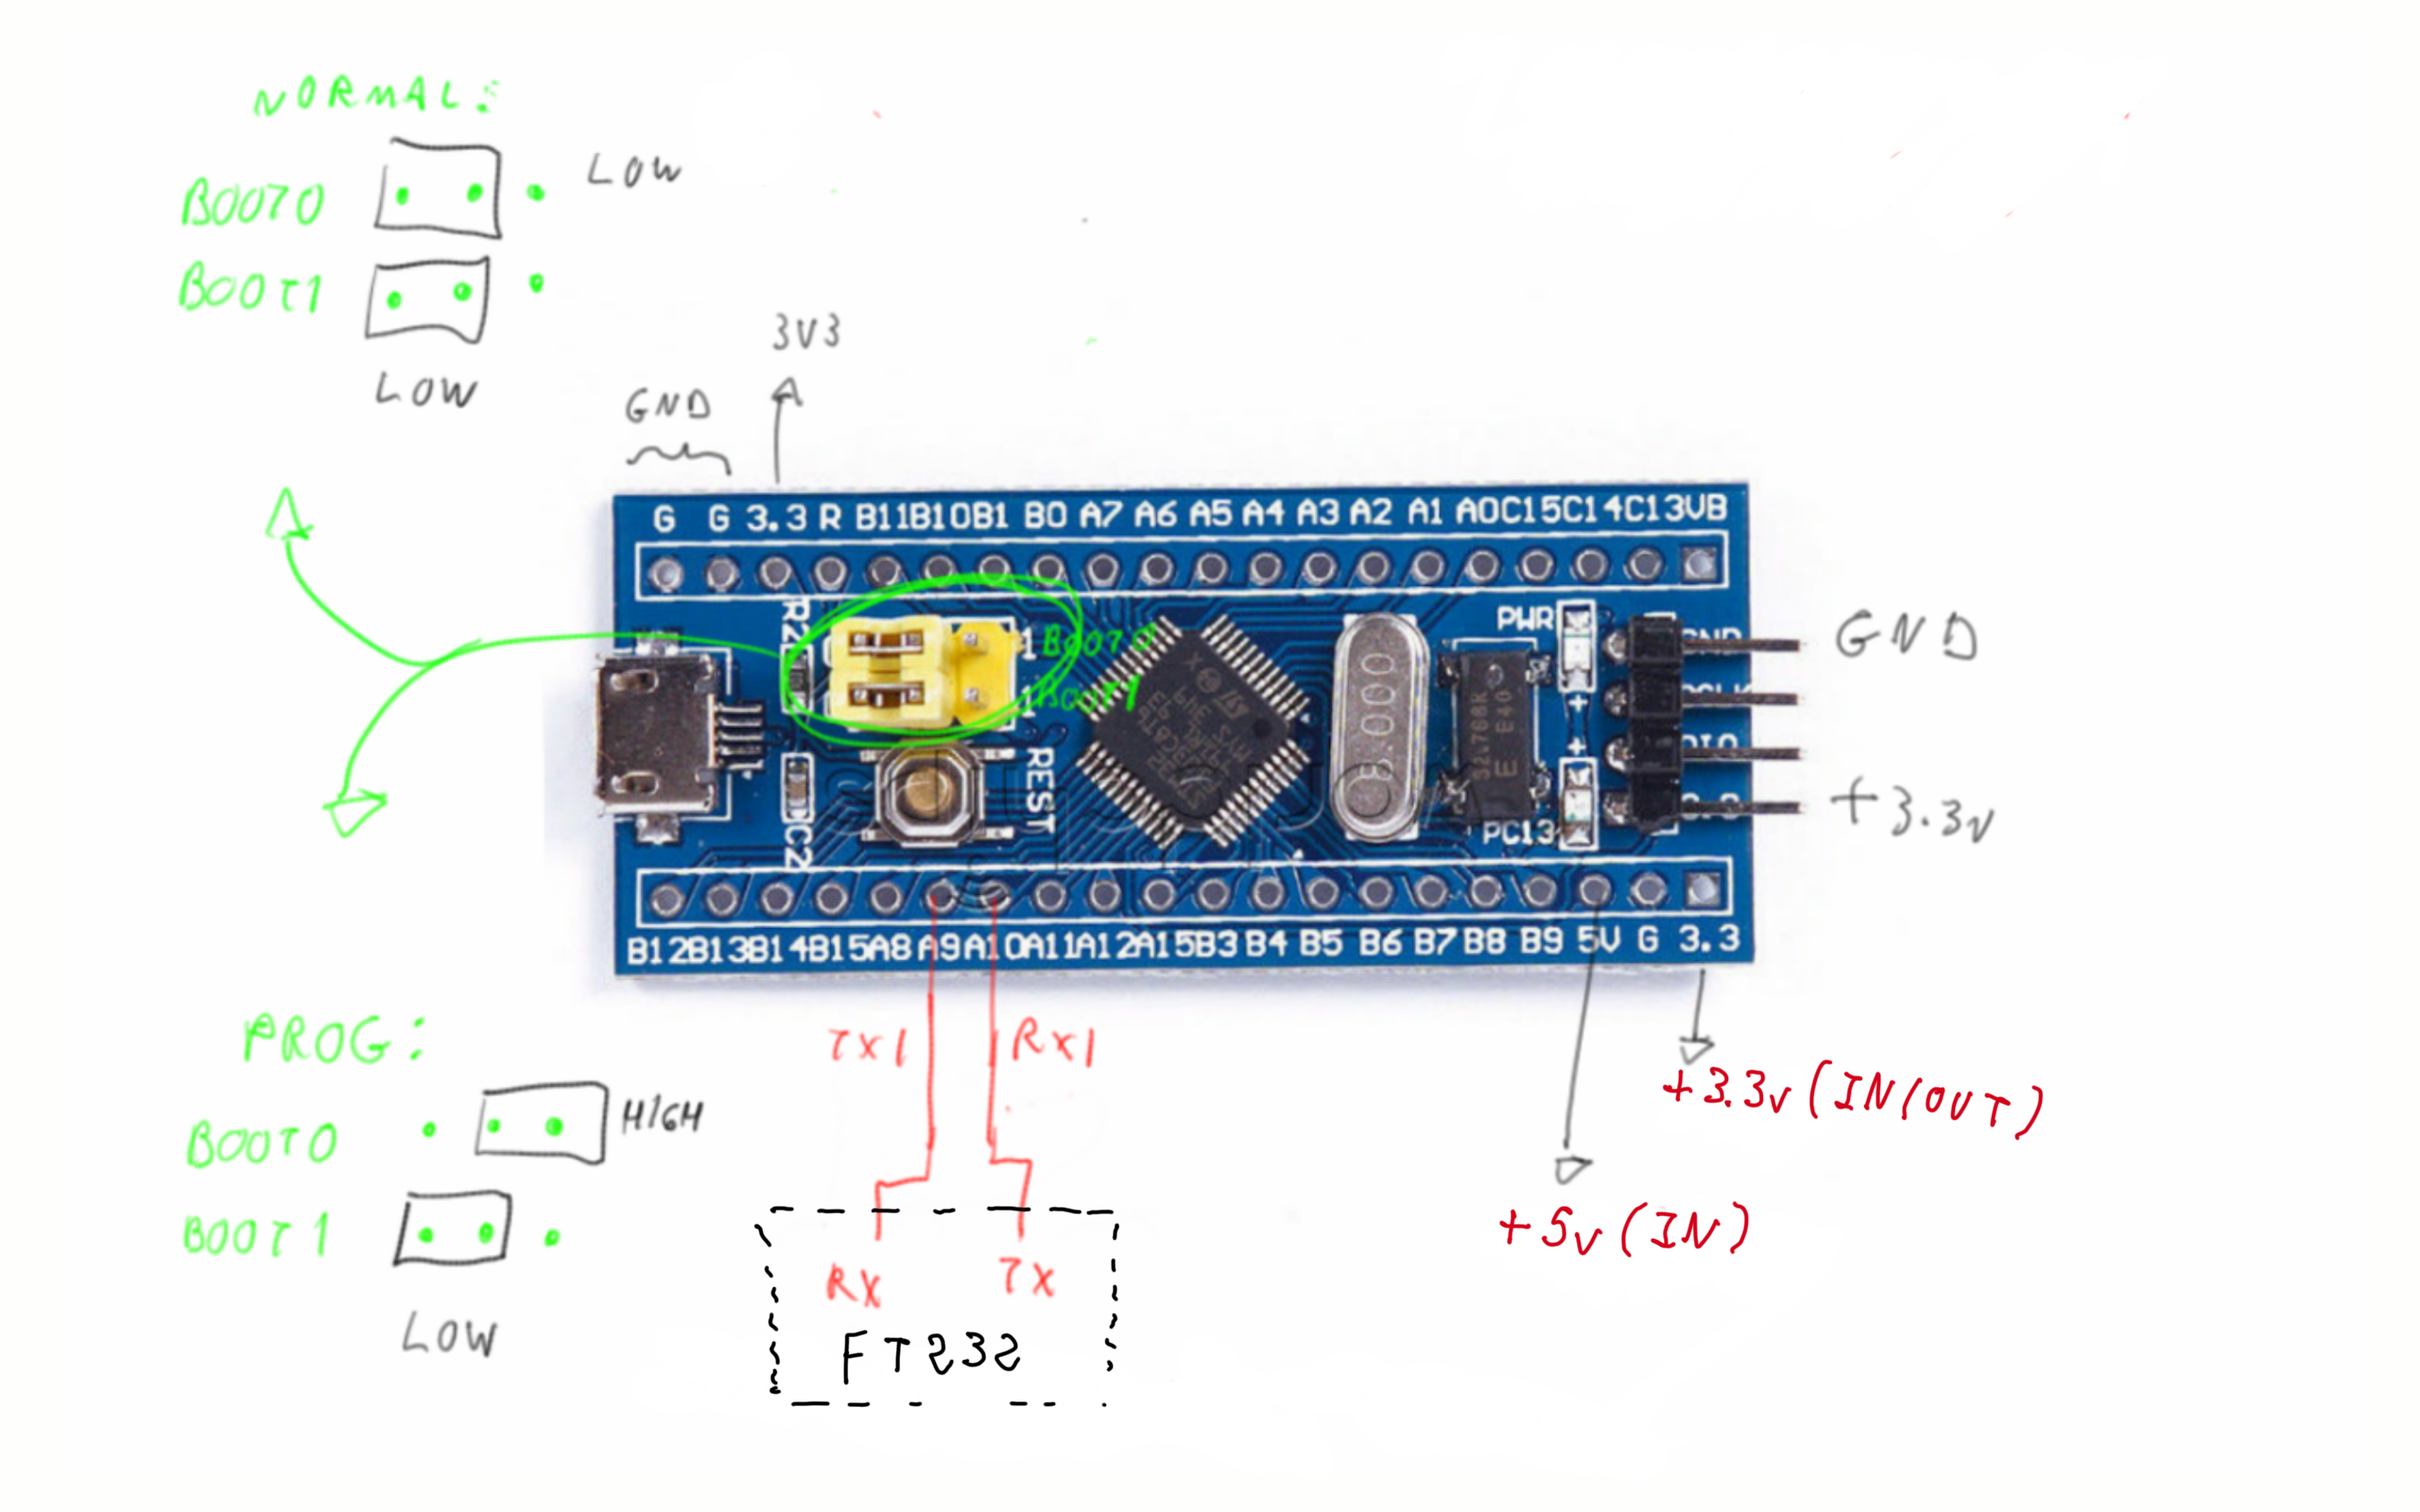 Multiscope Inductance Meter Circuit Add Stm32 Support To The Arduino Ide